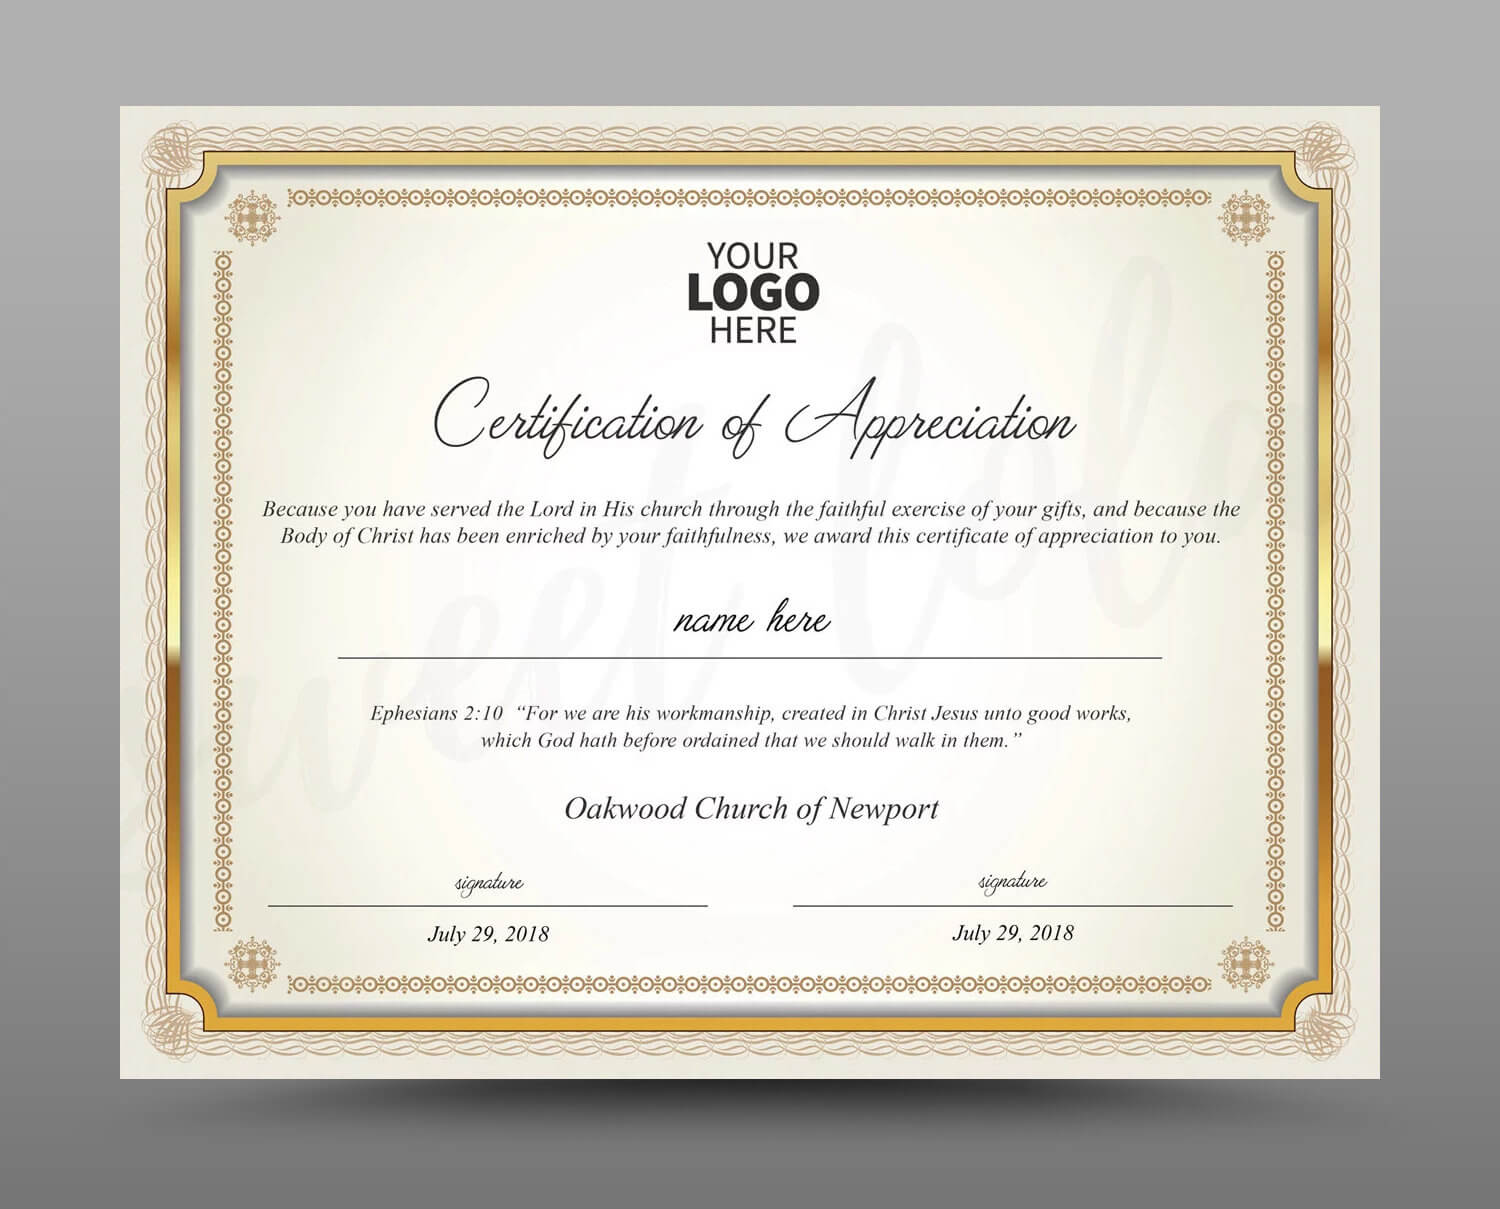 Certificate Template, Instant Download Certificate Of Appreciation -  Editable Ms Word Doc And Photoshop File Included in Walking Certificate Templates